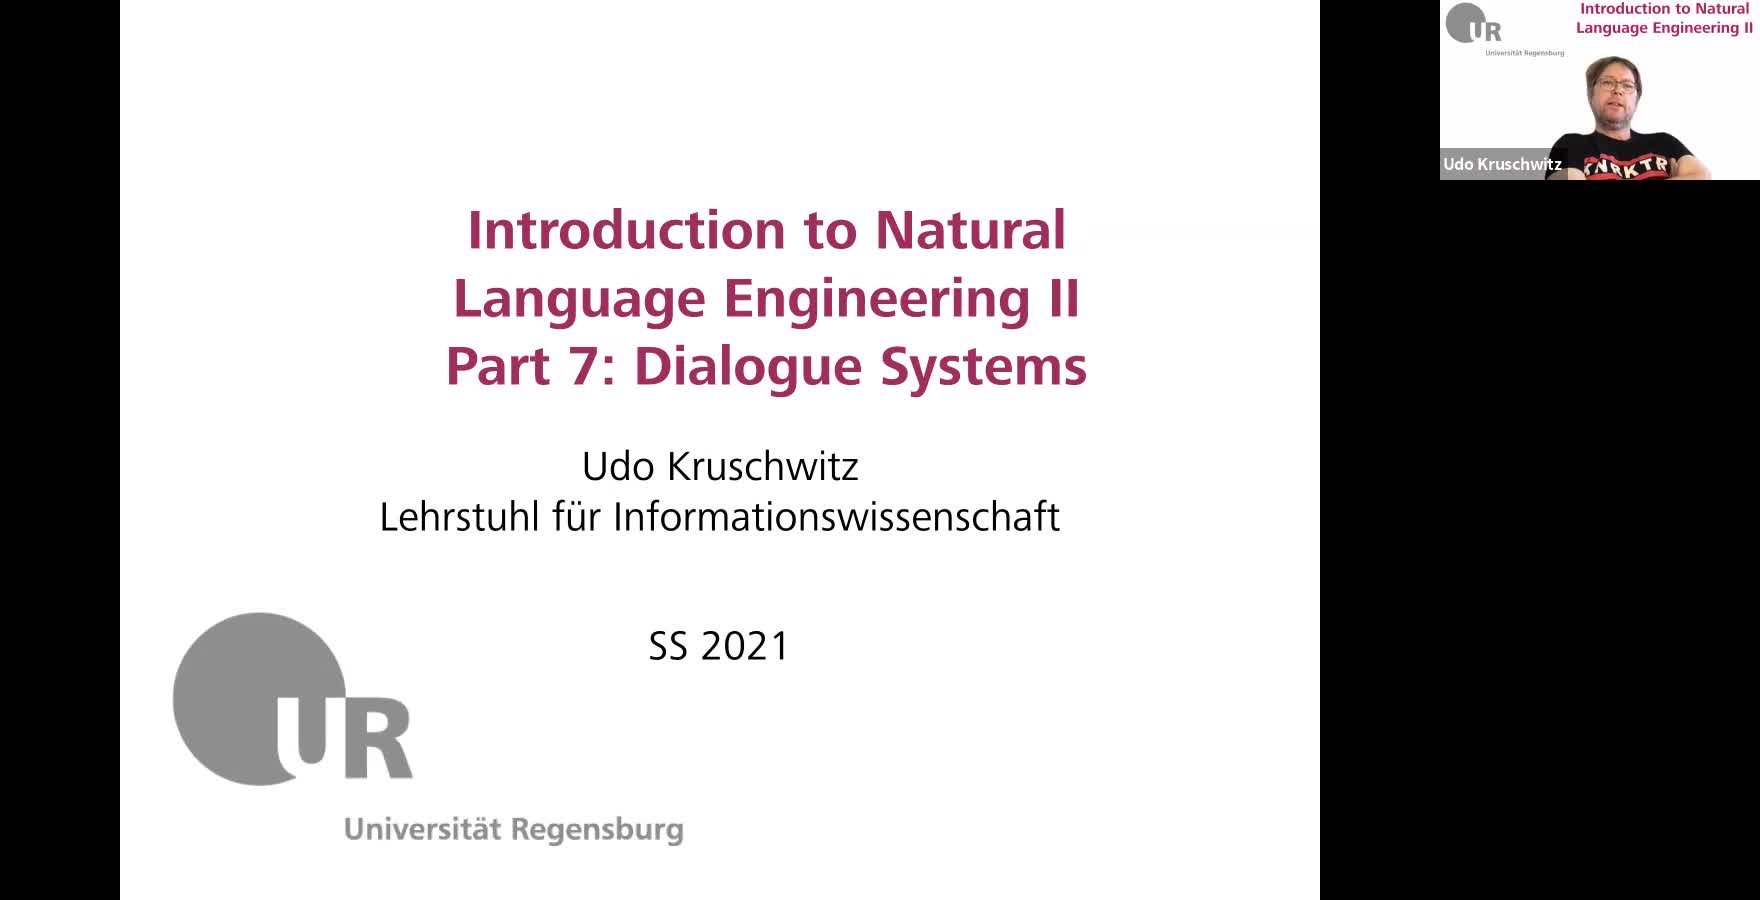 Introduction to Natural Language Engineering 2 / Informationslinguistik 2 - Lecture 9 (Dialogue Systems)